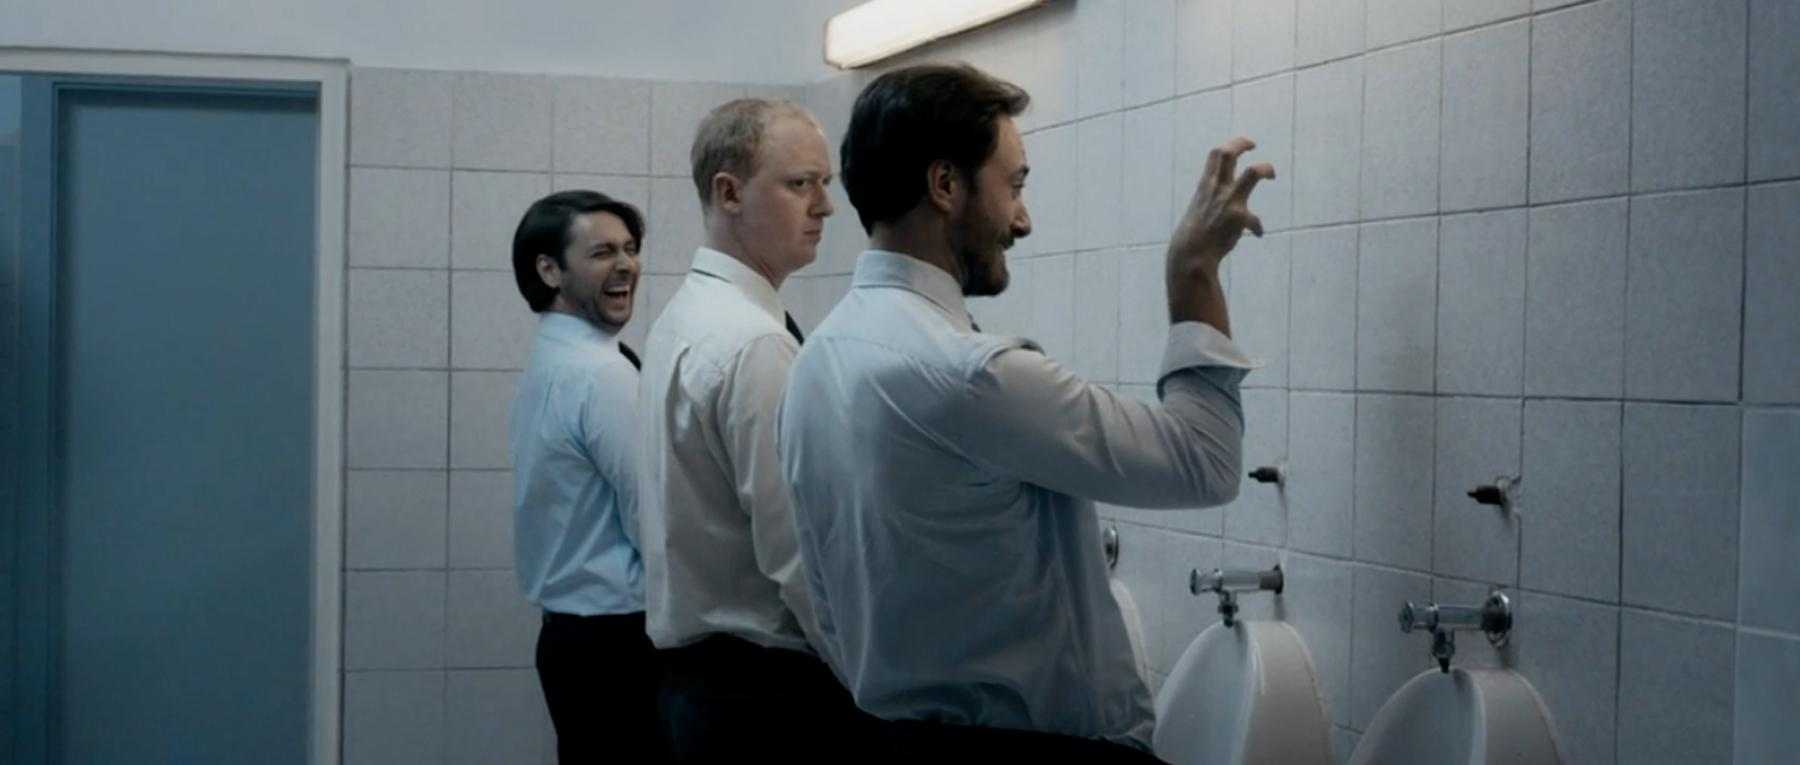 Ignore cult TV references at your peril, says hilarious Norwegian spot http://t.co/FA566cqejO http://t.co/Q0hahuwjKS